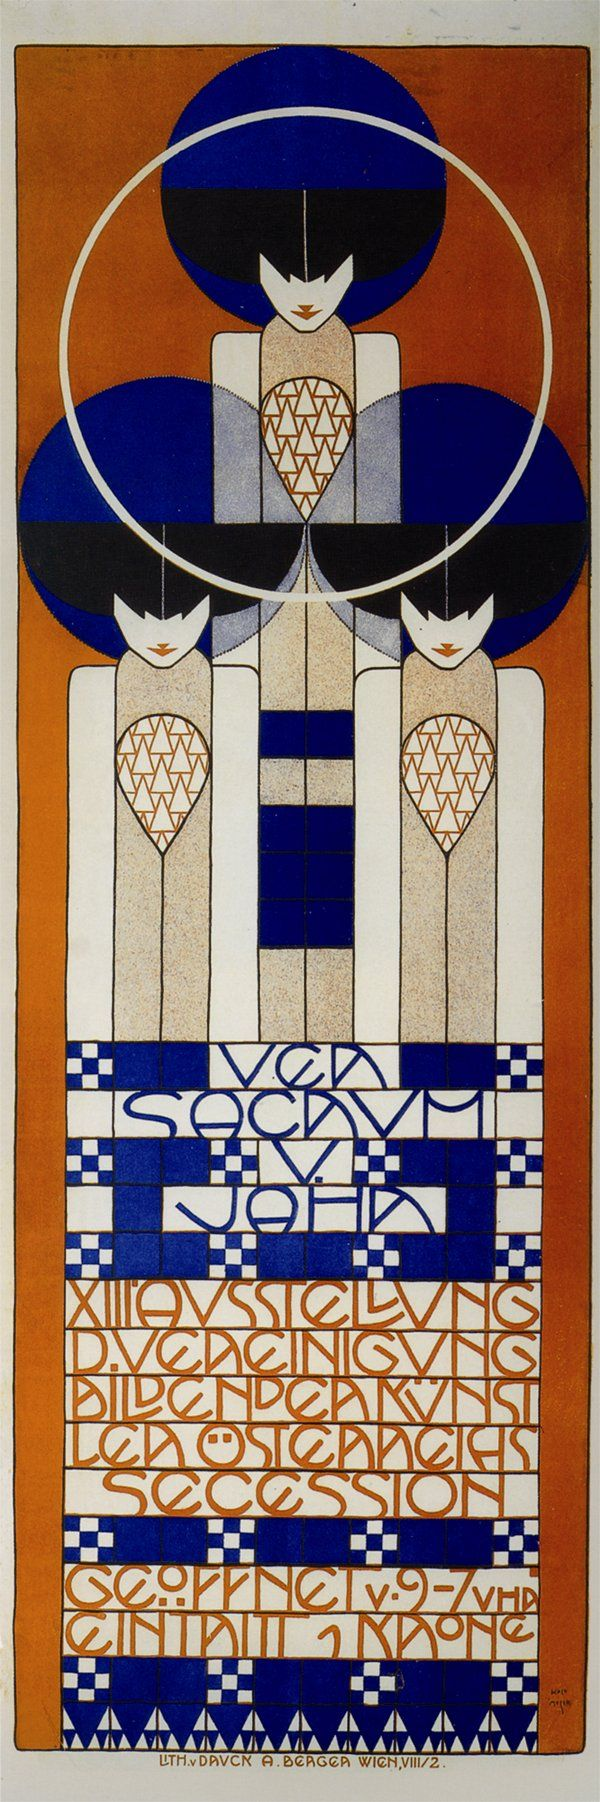 Poster design 20th century - Koloman Moser Poster For The Thirteenth Vienna Secession Exhibition 1902